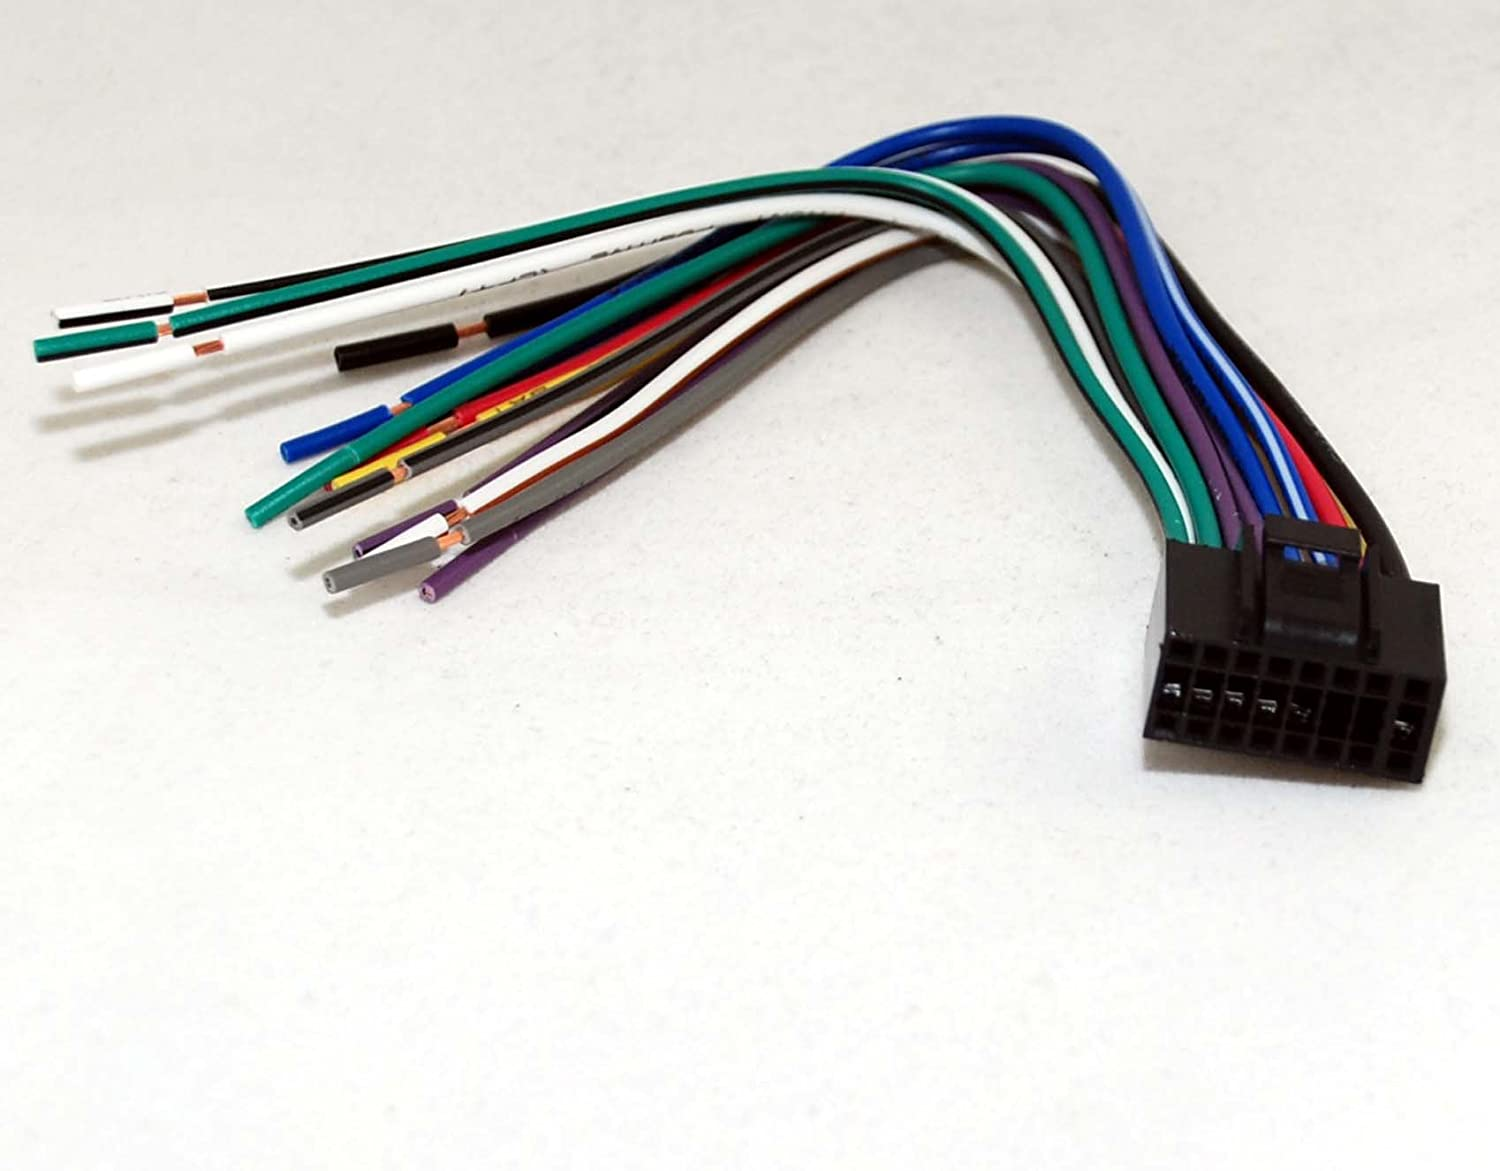 61Rzeblbo0L._SL1500_ amazon com xtenzi harness for dual 16 pin wire harness xdvd8181 dual stereo wiring harness at mr168.co